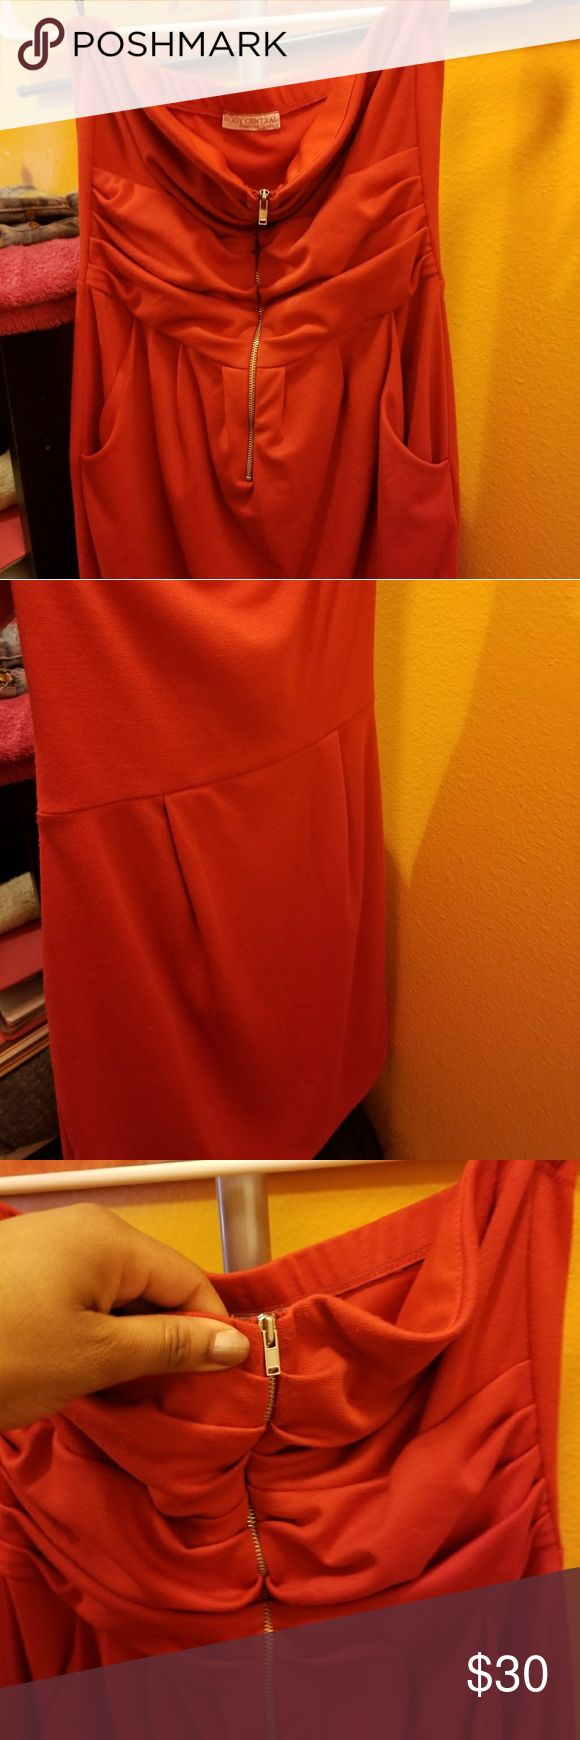 Pretty Red-orange Mini Dress A tube dress that is vivid red (with a slight orangey tint). It is short, zips in the front, and has pockets. Very cute. Body Central Dresses Mini